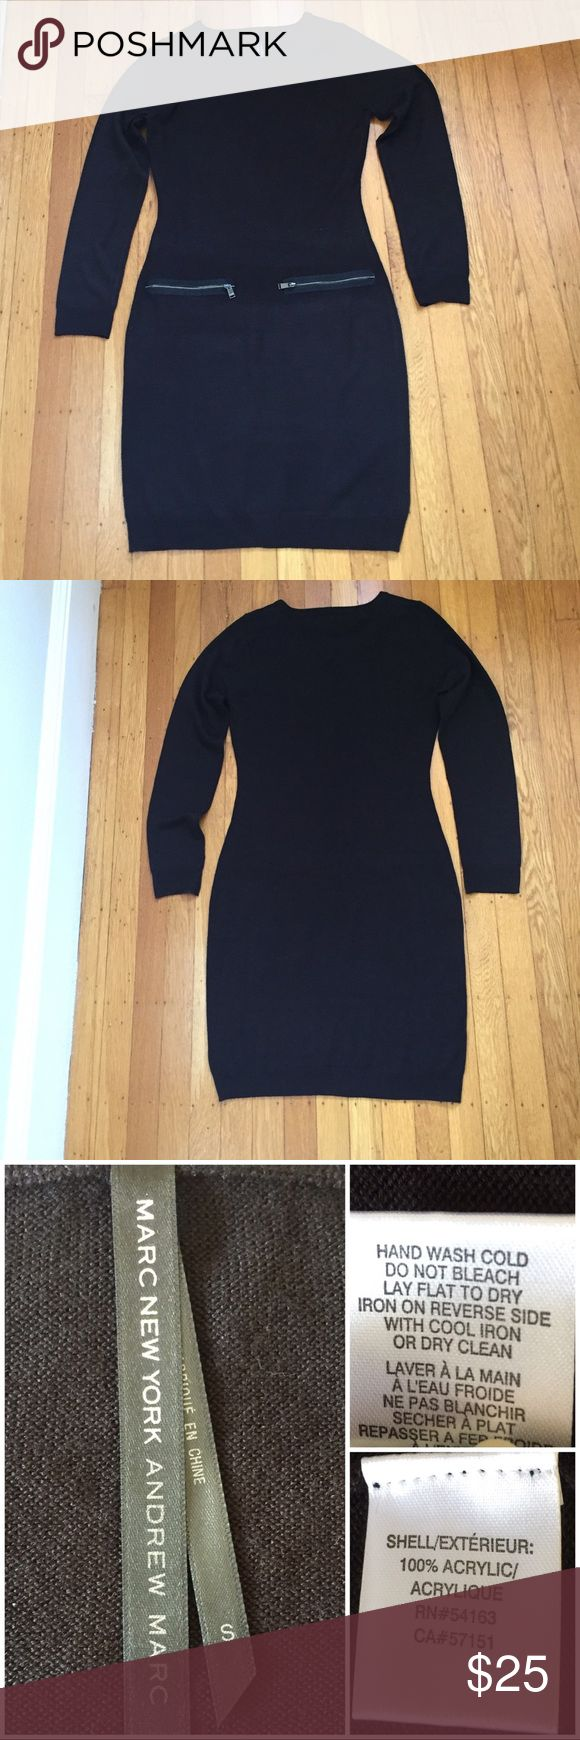 """Marc New York Andrew Marc Black Knit Dress. Marc New York Andrew Marc Black Knit Figure Fitting   Dress.  Size S.  Flat lay measurements. Between underarms 19"""". Waist 15 1/2"""". Hips 17"""". Timeless chic. •••••FIRM PRICE••••• Andrew Marc Dresses Midi"""